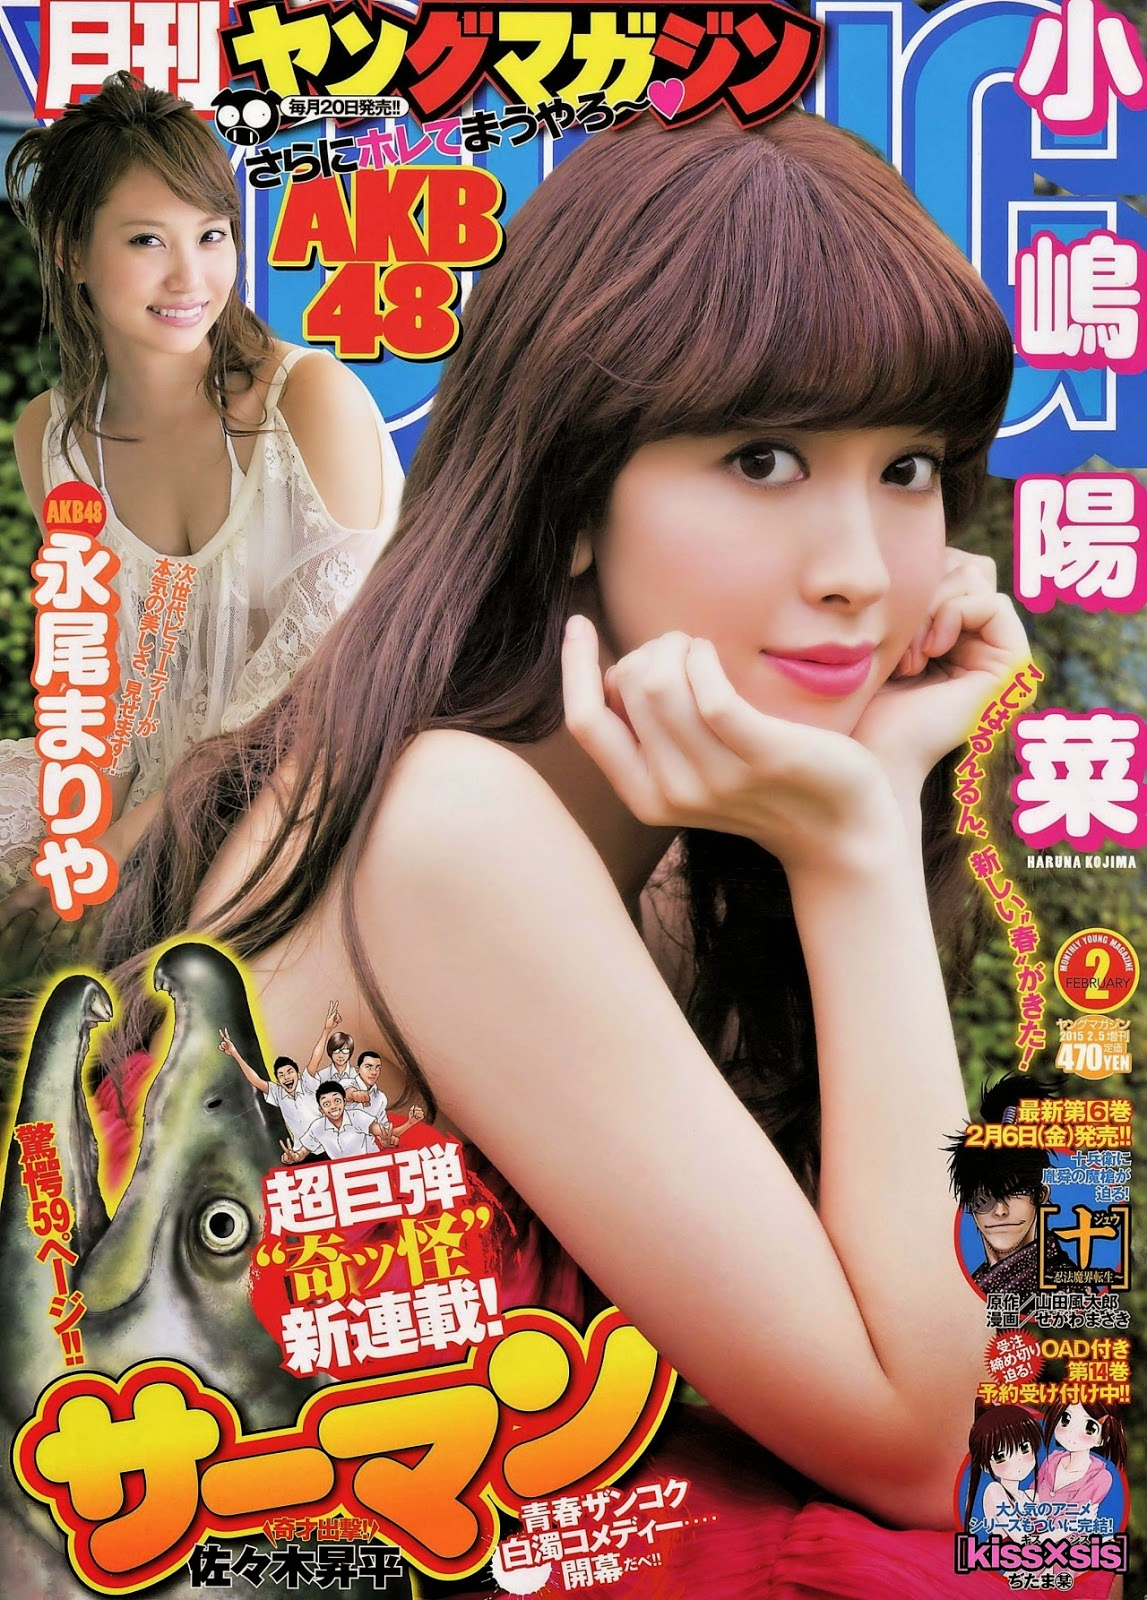 Kojima Haruna 小嶋陽菜 Monthly Young Magazine Feb 2015 Cover